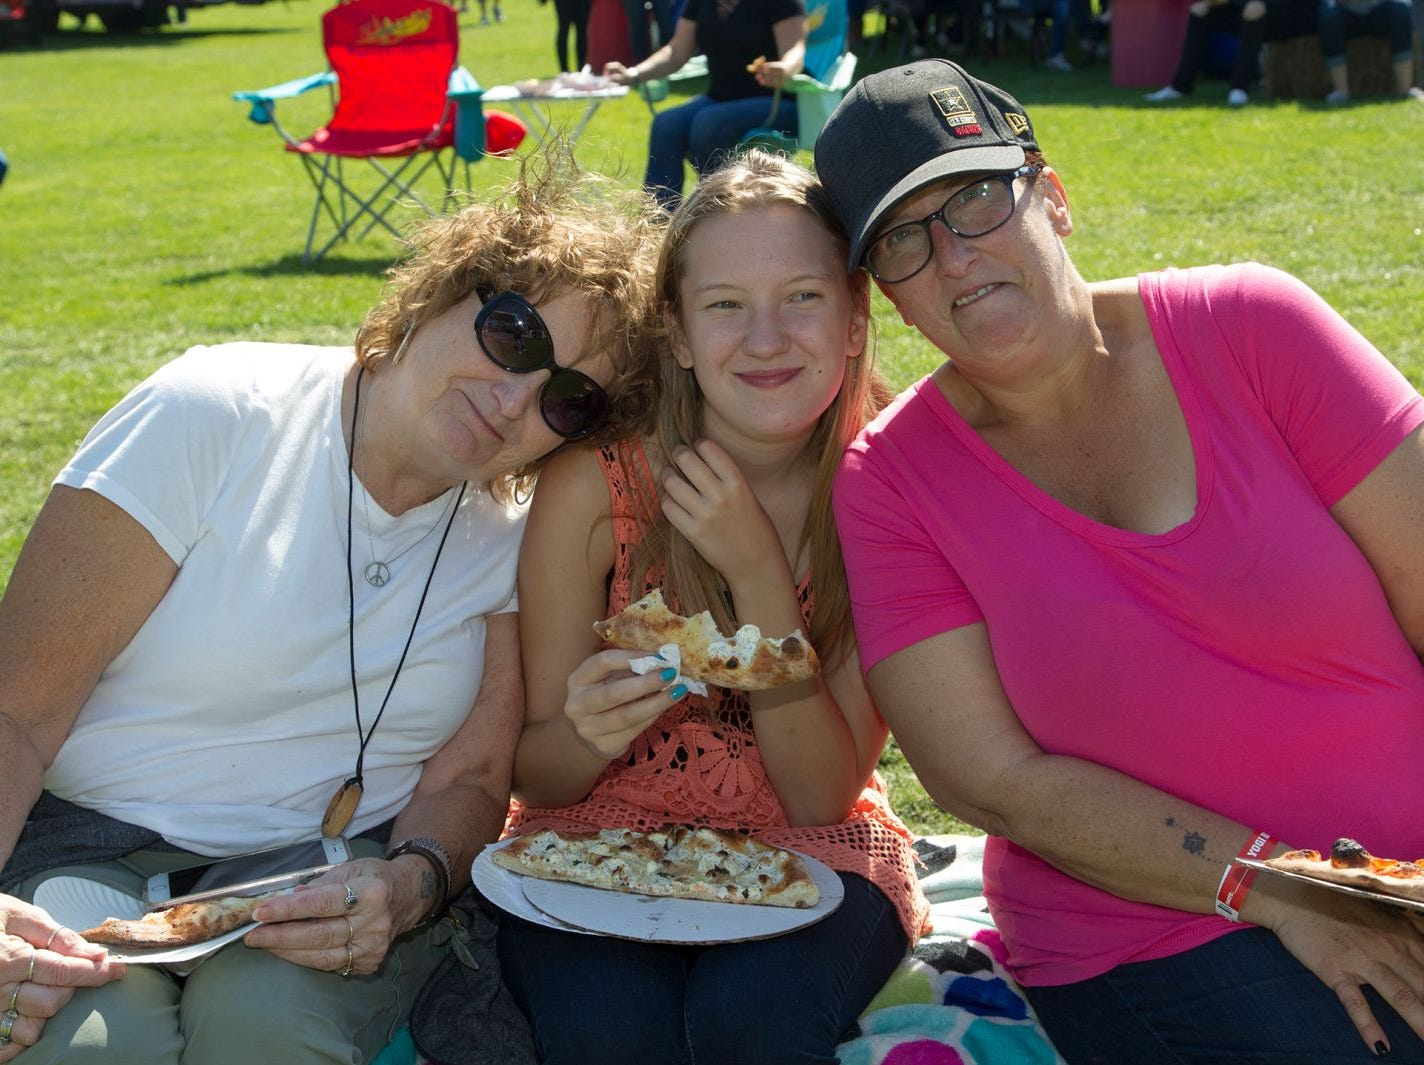 Dawn, Stephanie, Maria. The second annual Food Truck & Craft Beer Festival at Yogi Berra Stadium in Little Falls. 09/29/2018